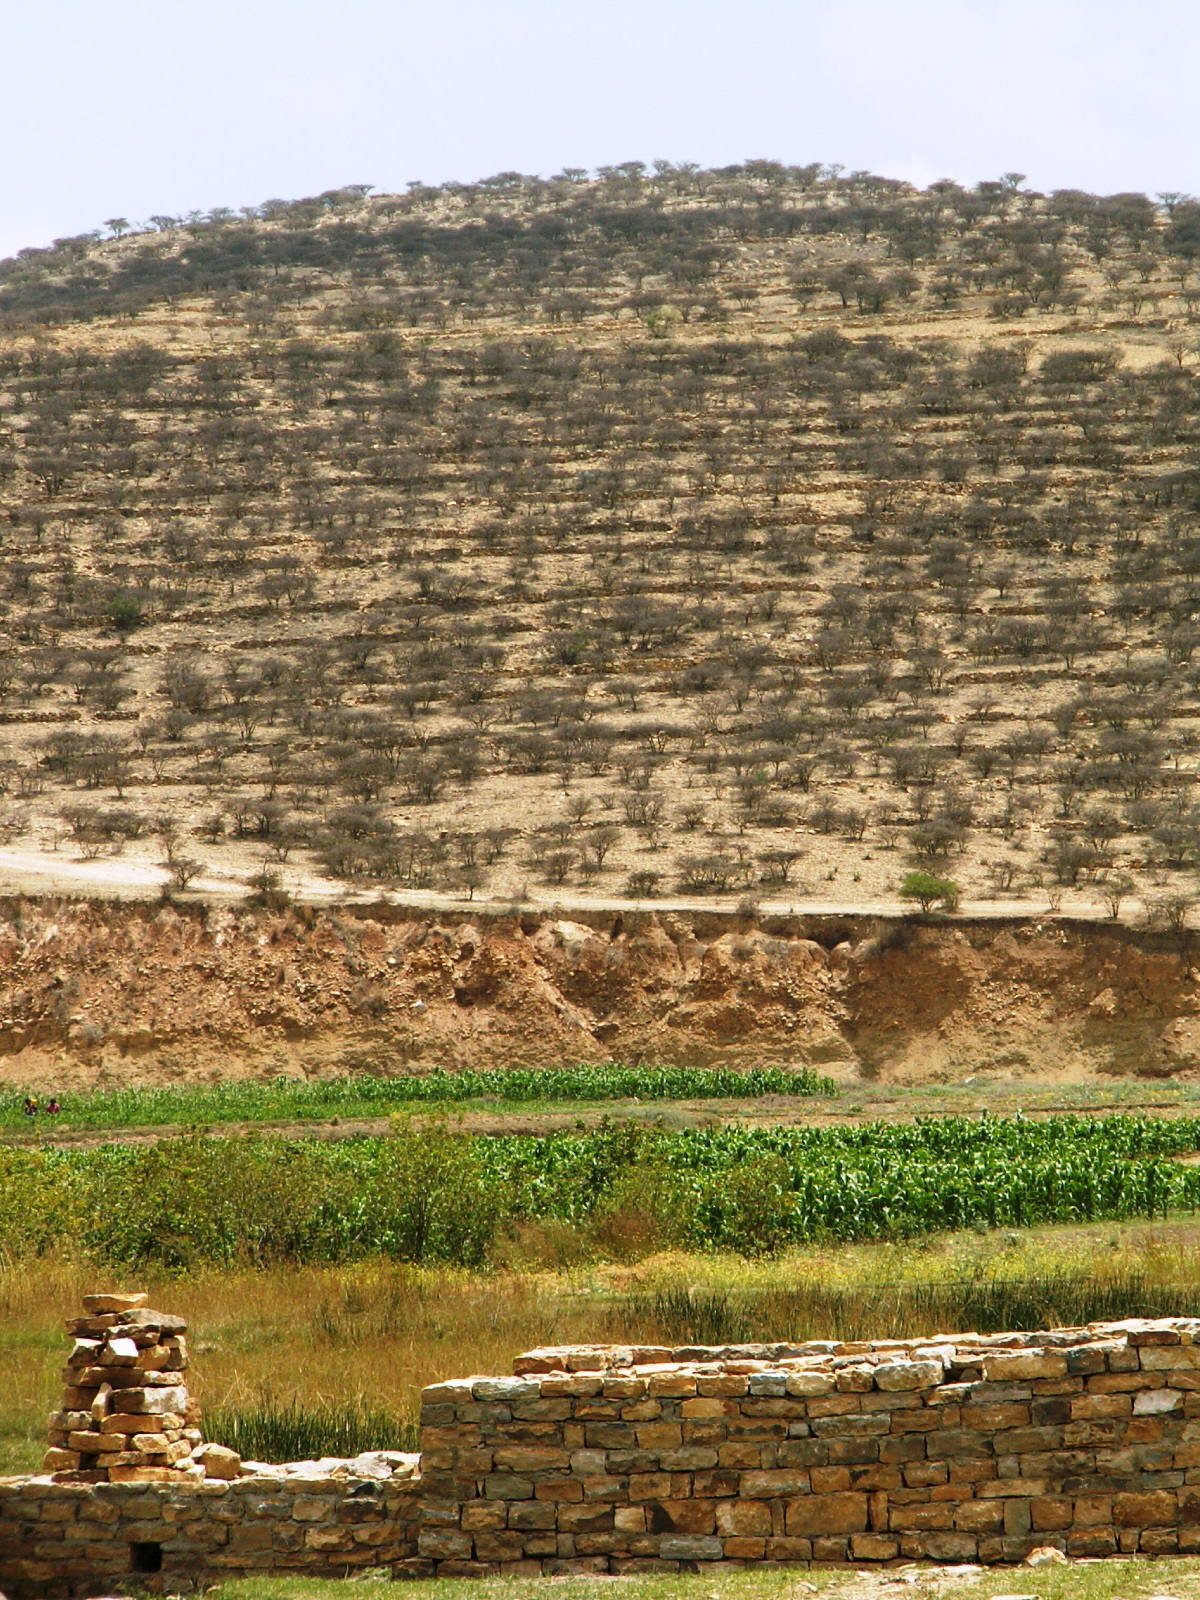 <p>Stone bunds and terracing allow rainwater to infiltrate slops and support irrigation in the valleys. Photo by Chris Reij/WRI</p>